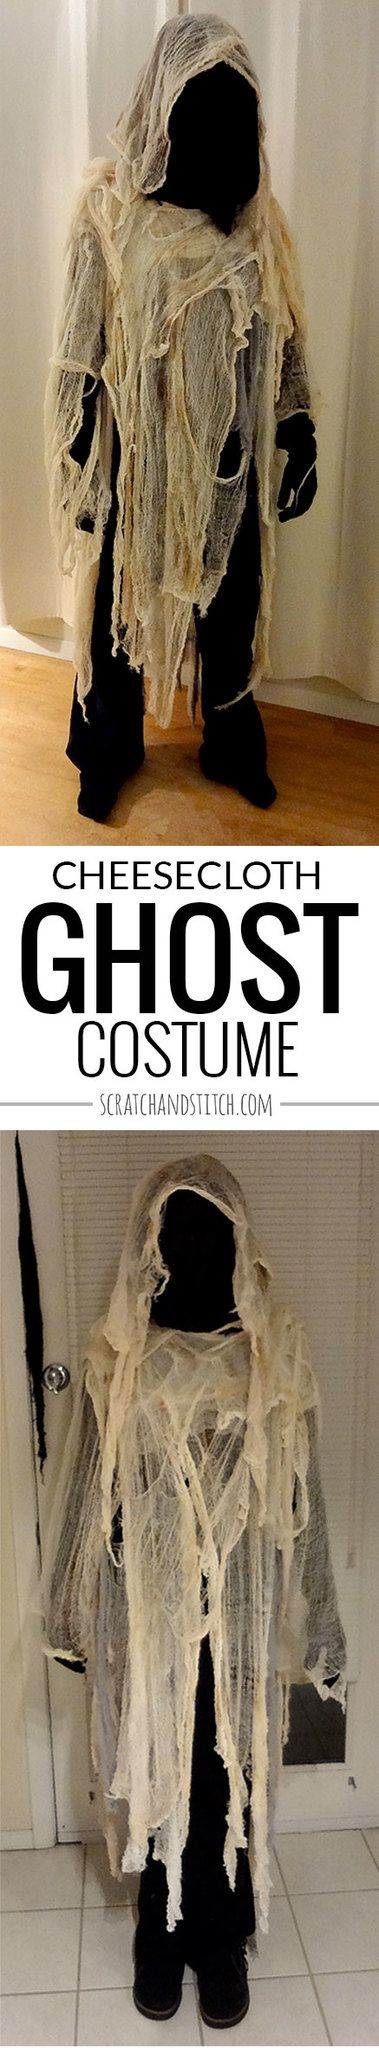 Easy Cheesecloth Ghost Costume by scratchandstitch.com